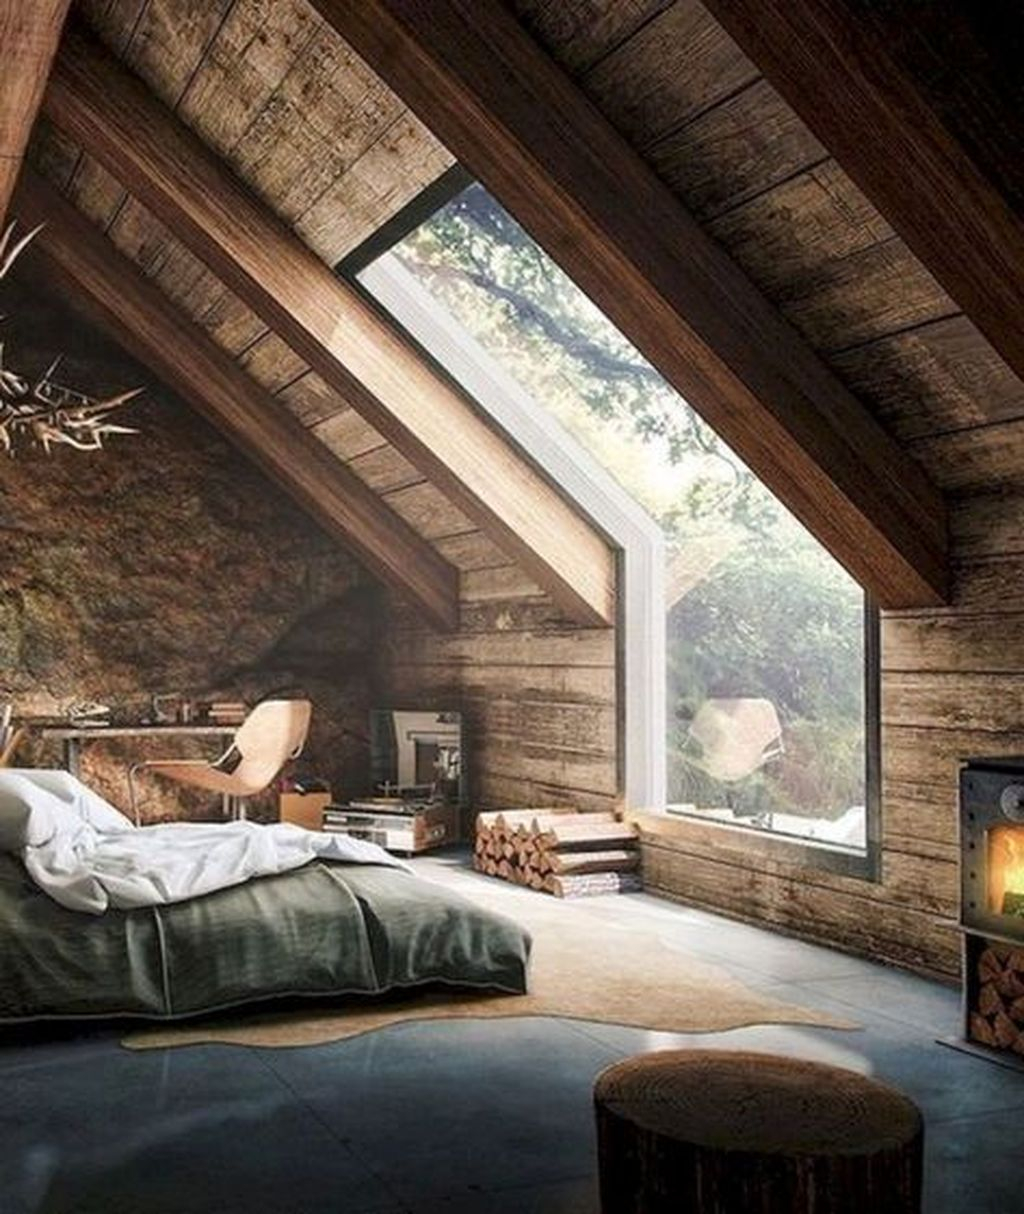 Lighting Ceiling Bedroom Ideas For Comfortable Sleep44